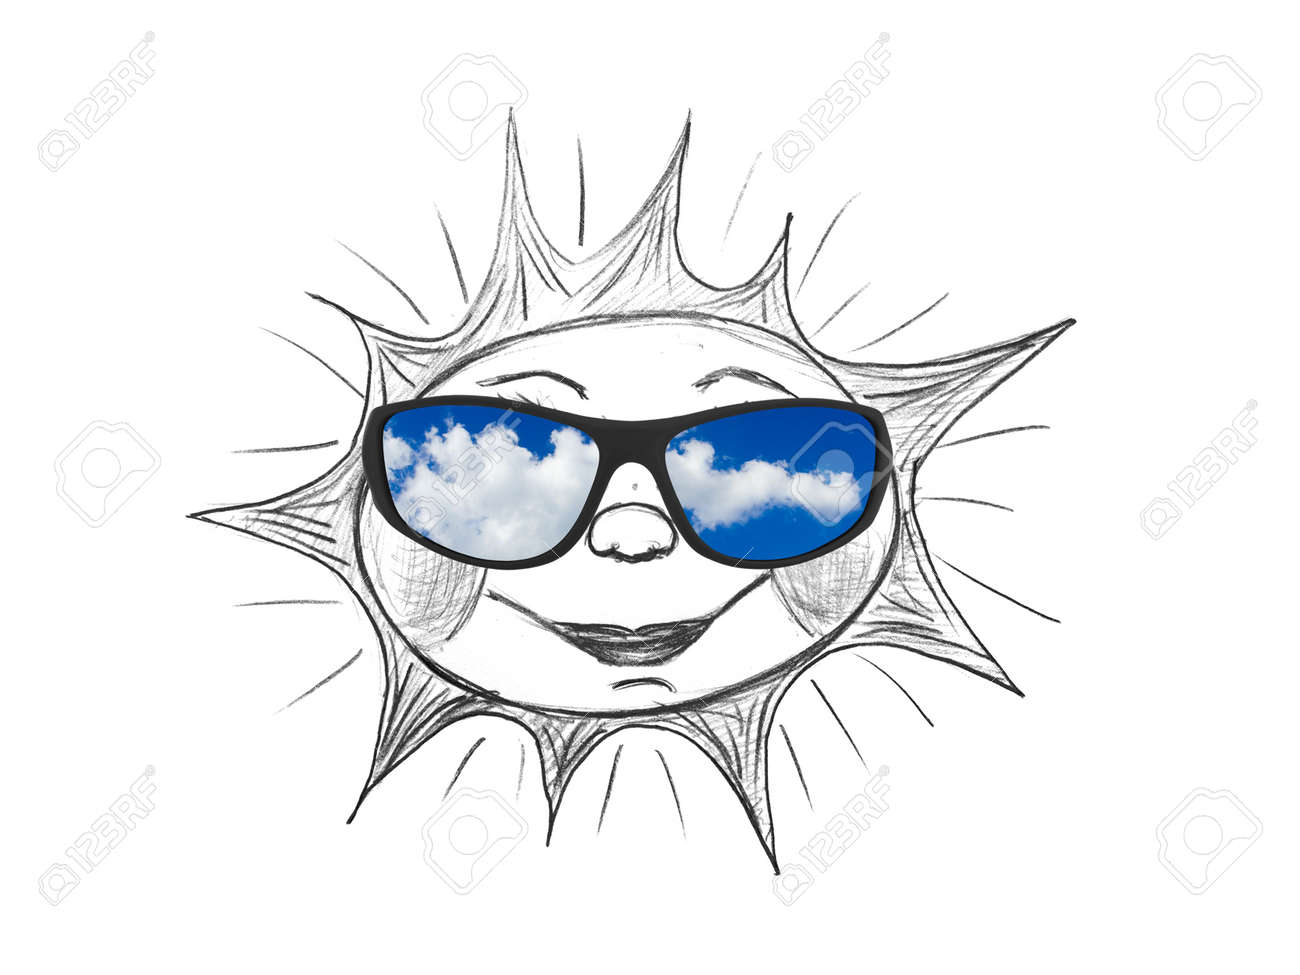 3ef012283ed0 Drawing sun (my artwork) and sunglasses isolated on white background Stock  Photo - 4664639